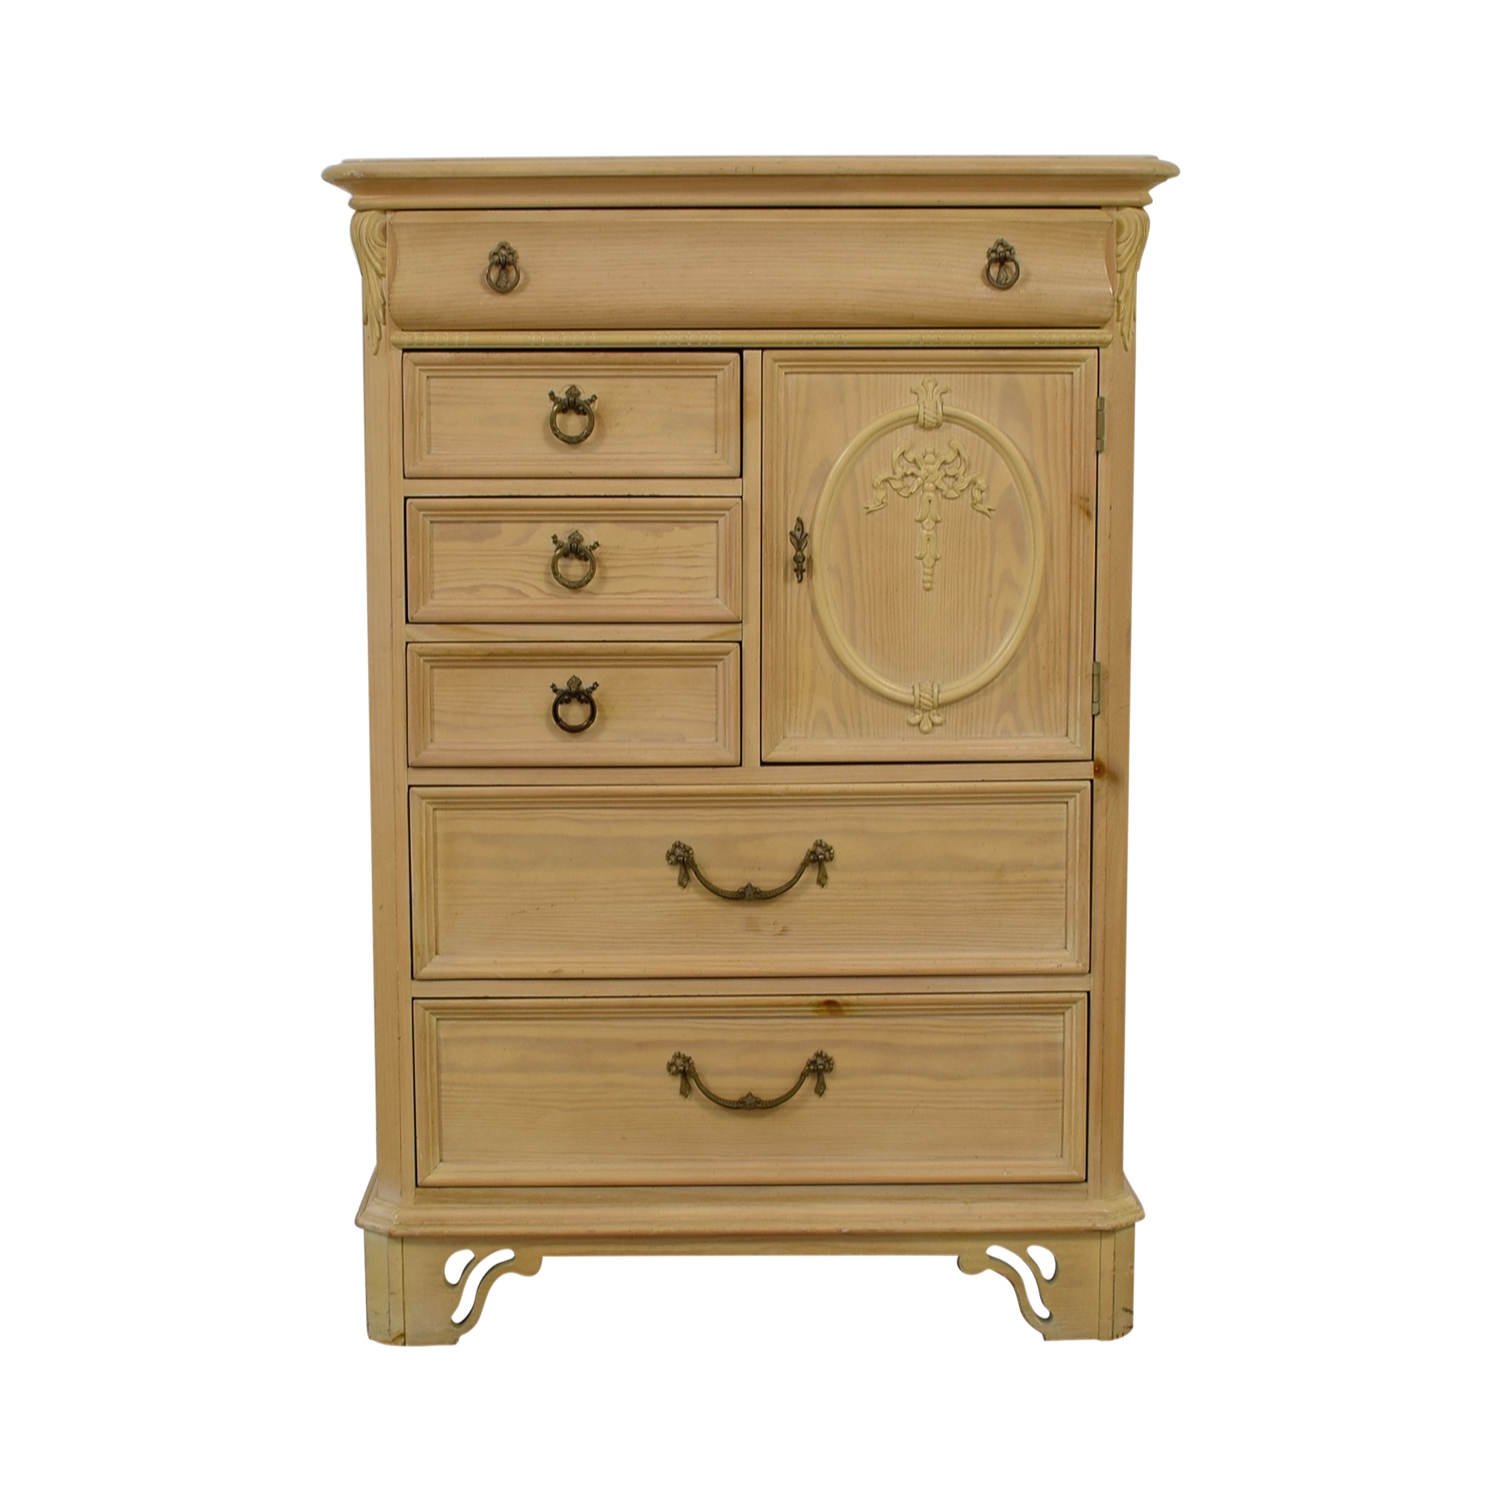 shop Lexington Lynn Hollyn at Home Tall Dresser Lexington Lynn Hollyn at Home Storage